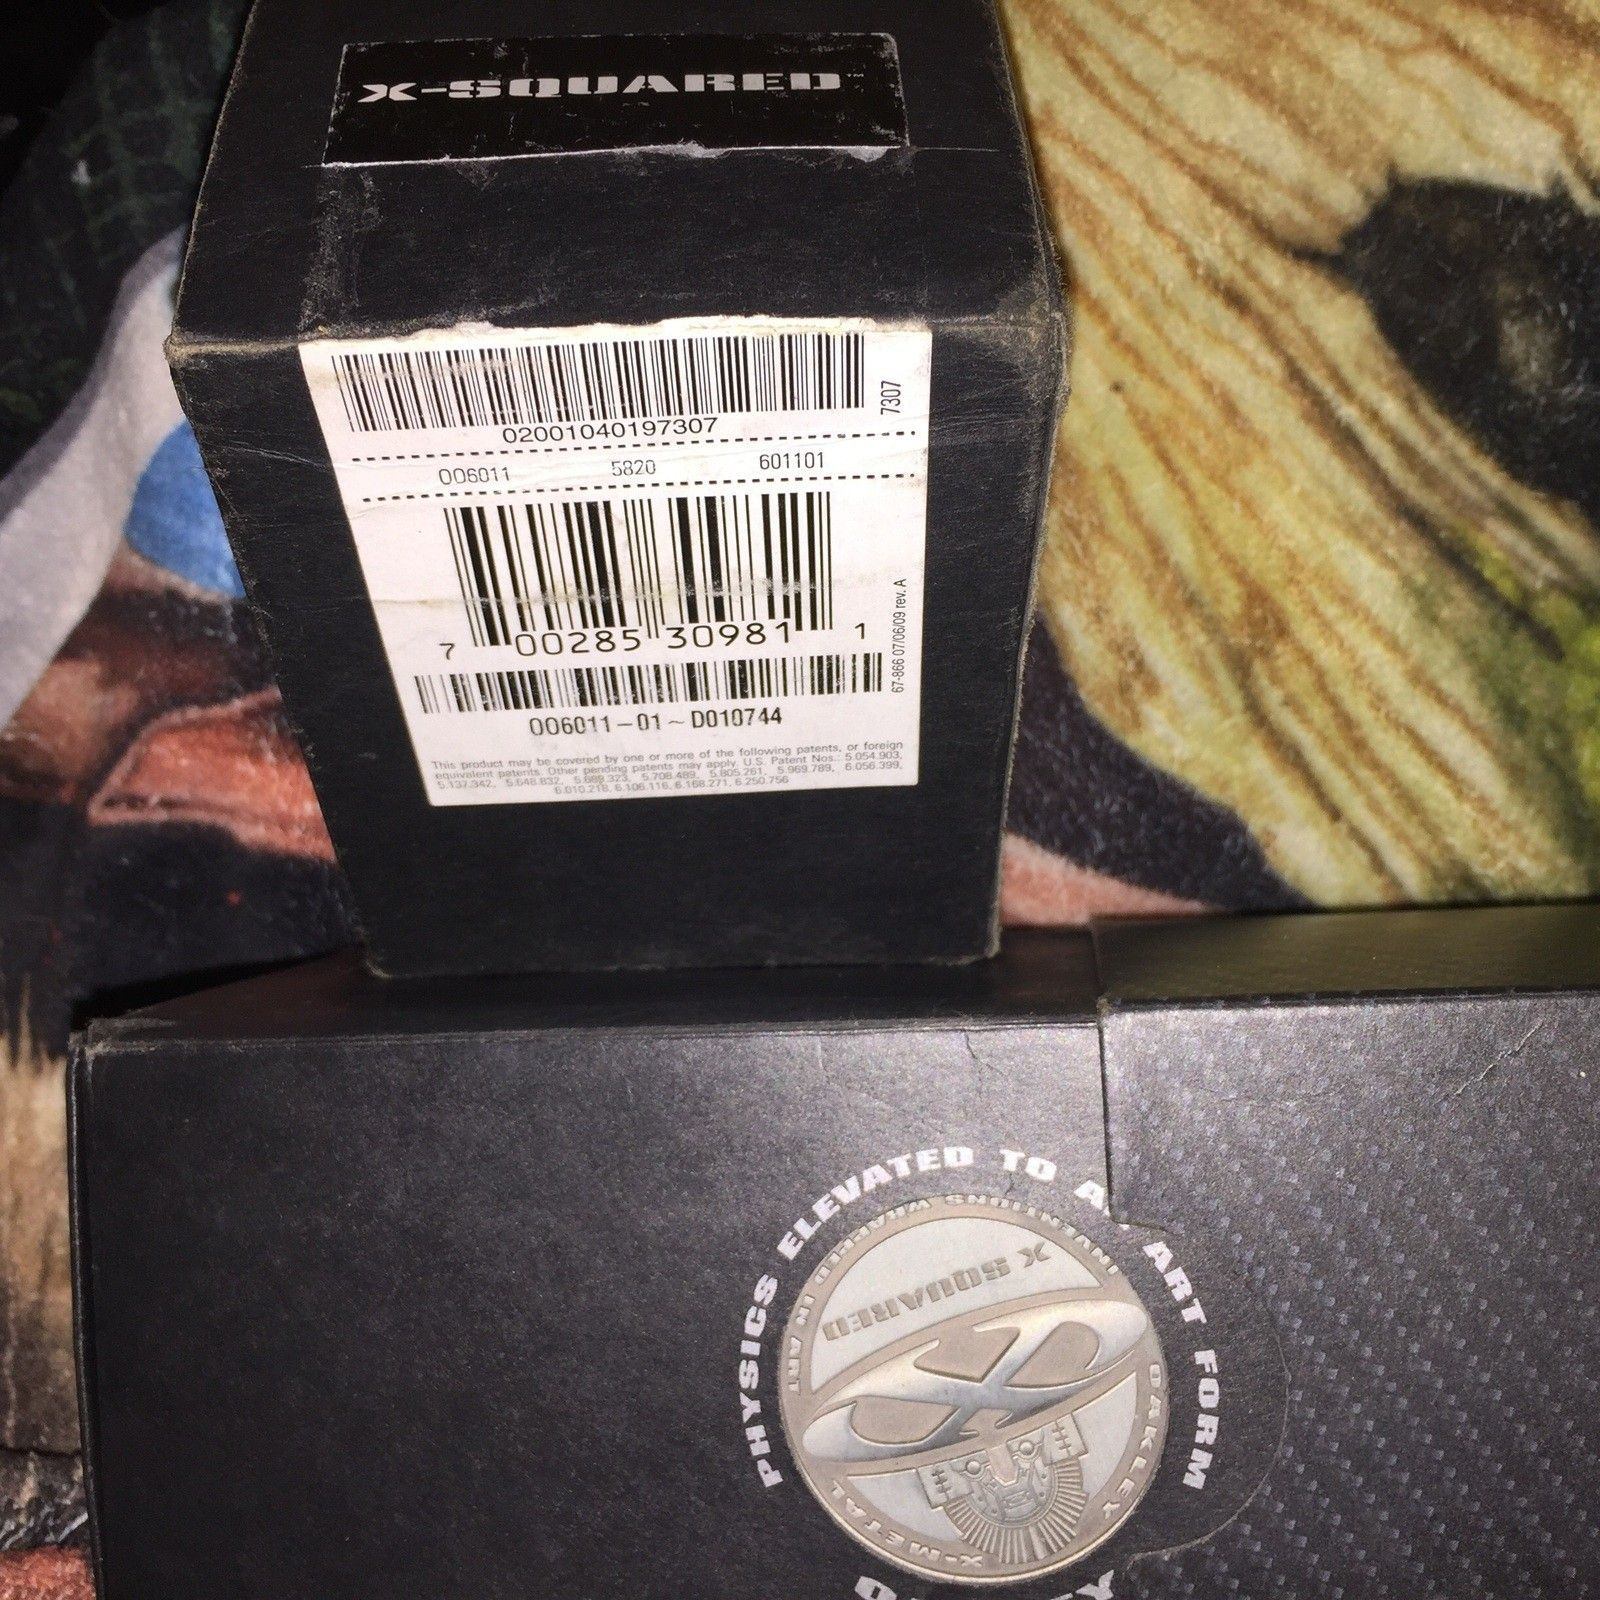 X squared carbon box and coin and a Xmetal ballistic case or trade - image.jpg